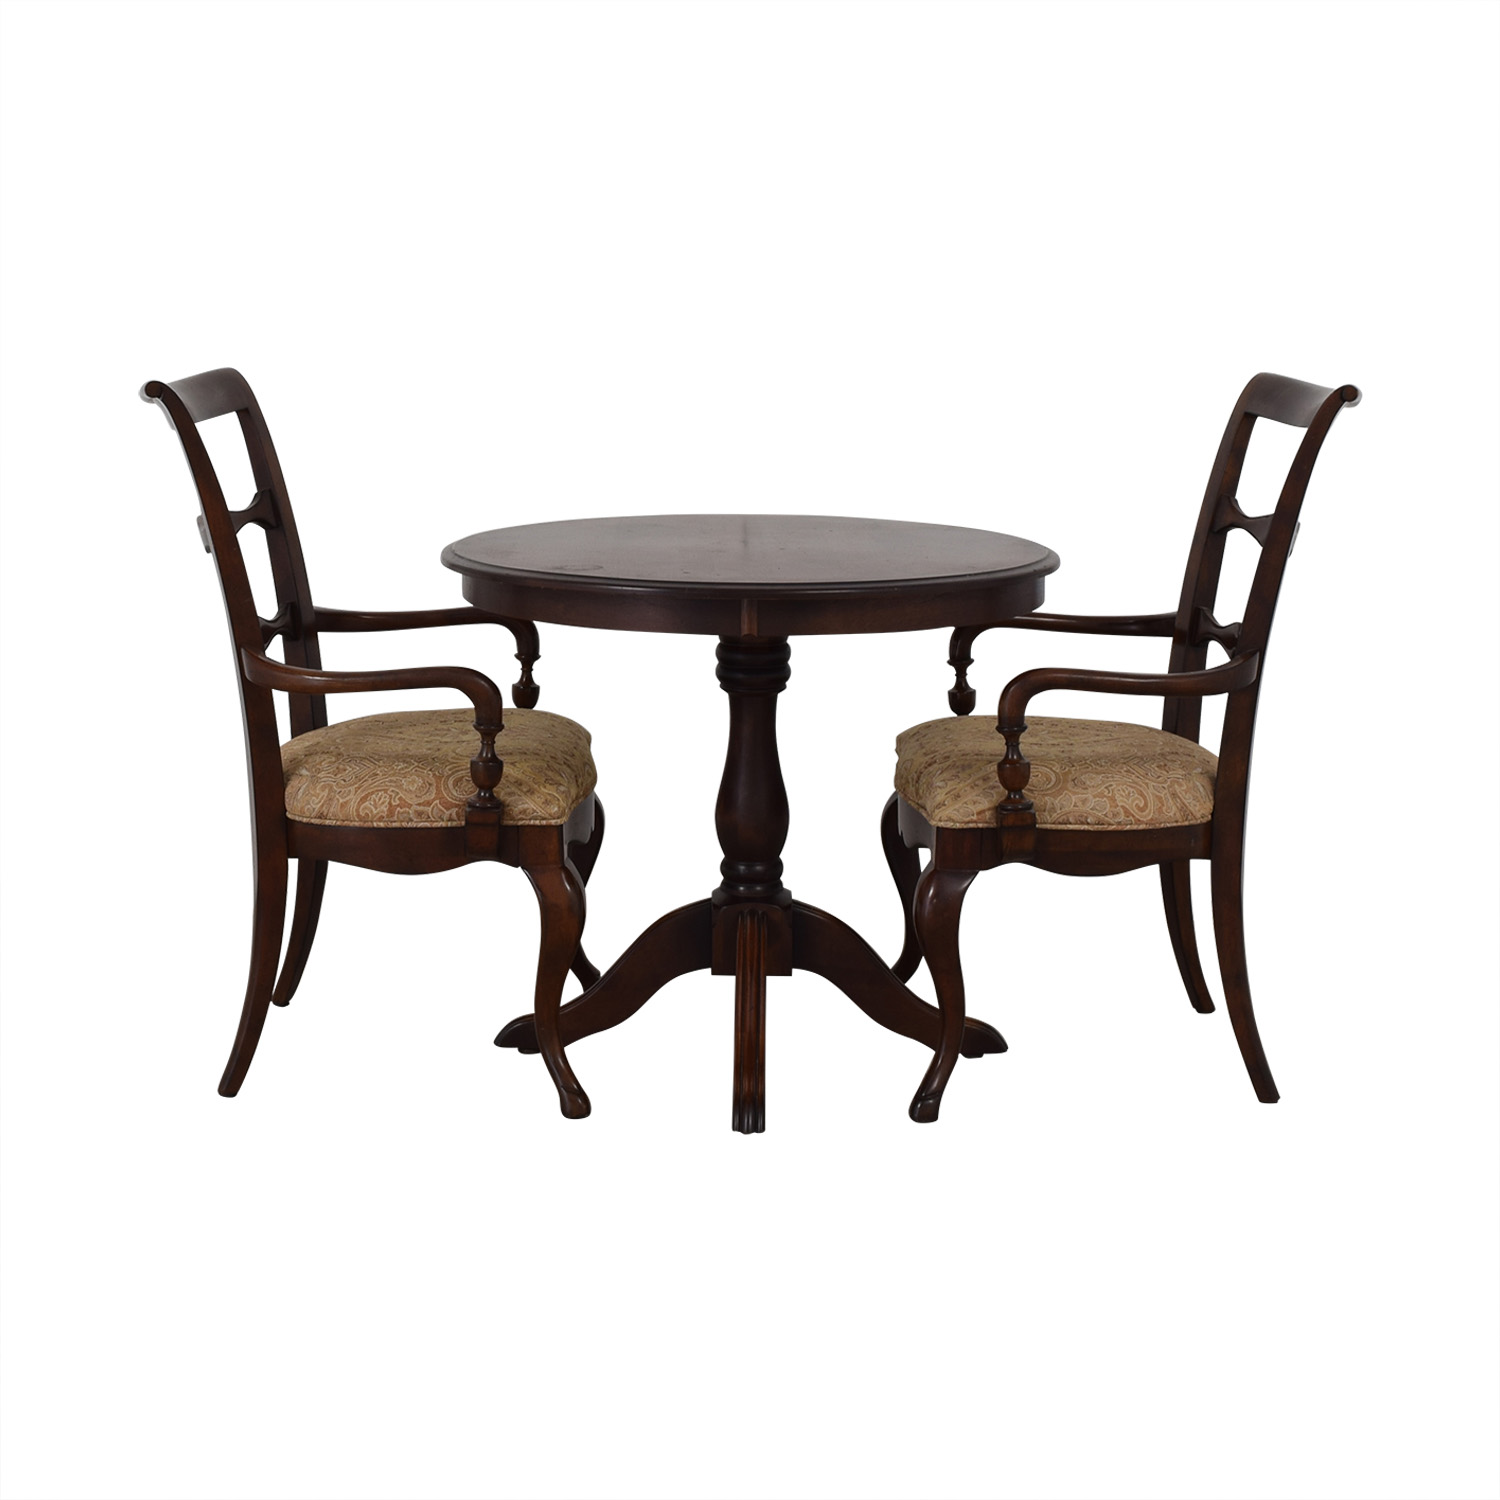 Thomasville Thomasville Three-Piece Dining Set Dining Sets